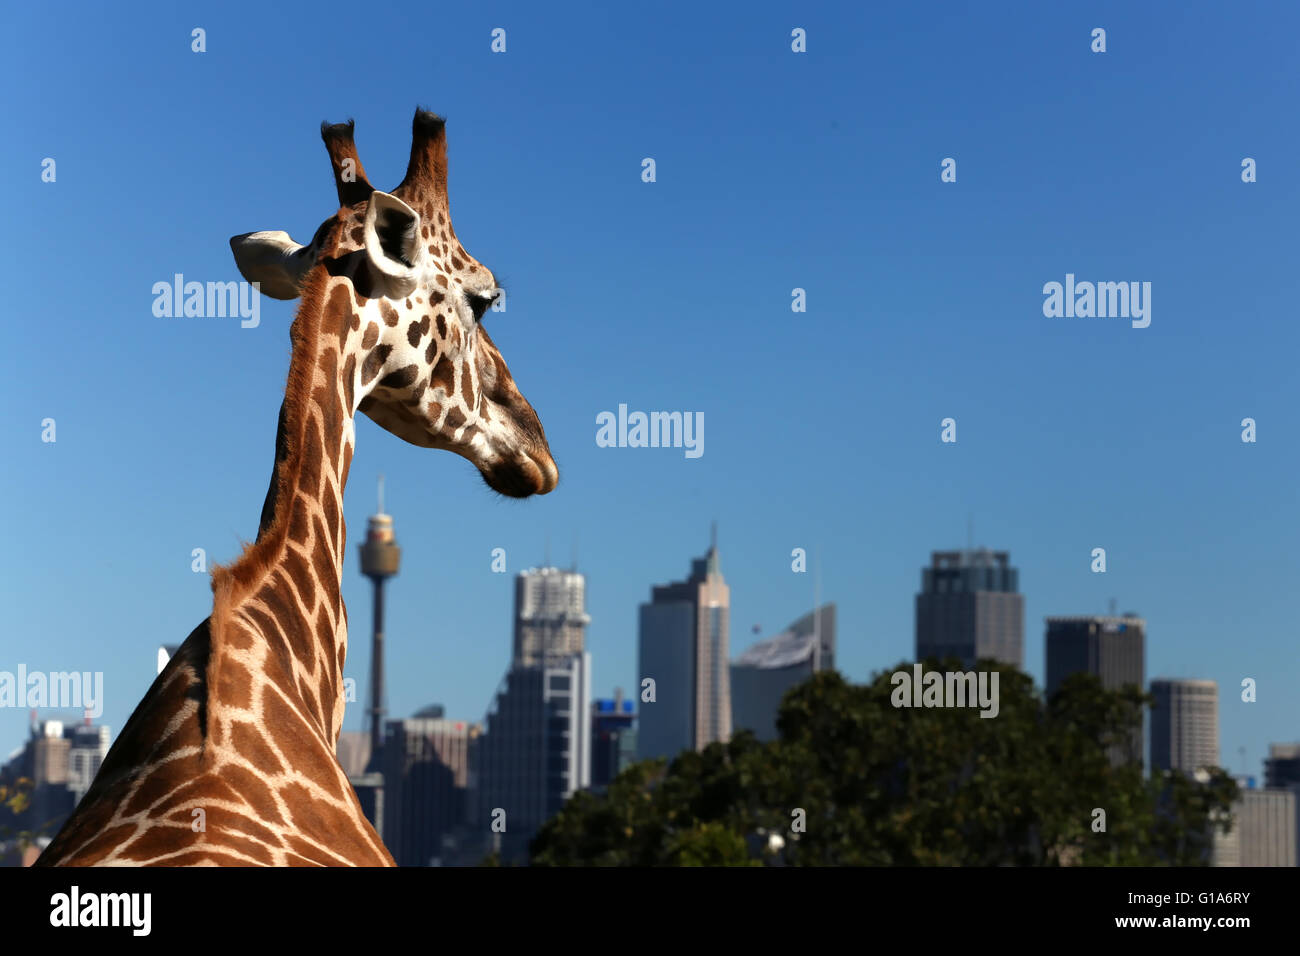 Giraffe looks across Sydney Harbour towards the city - Stock Image